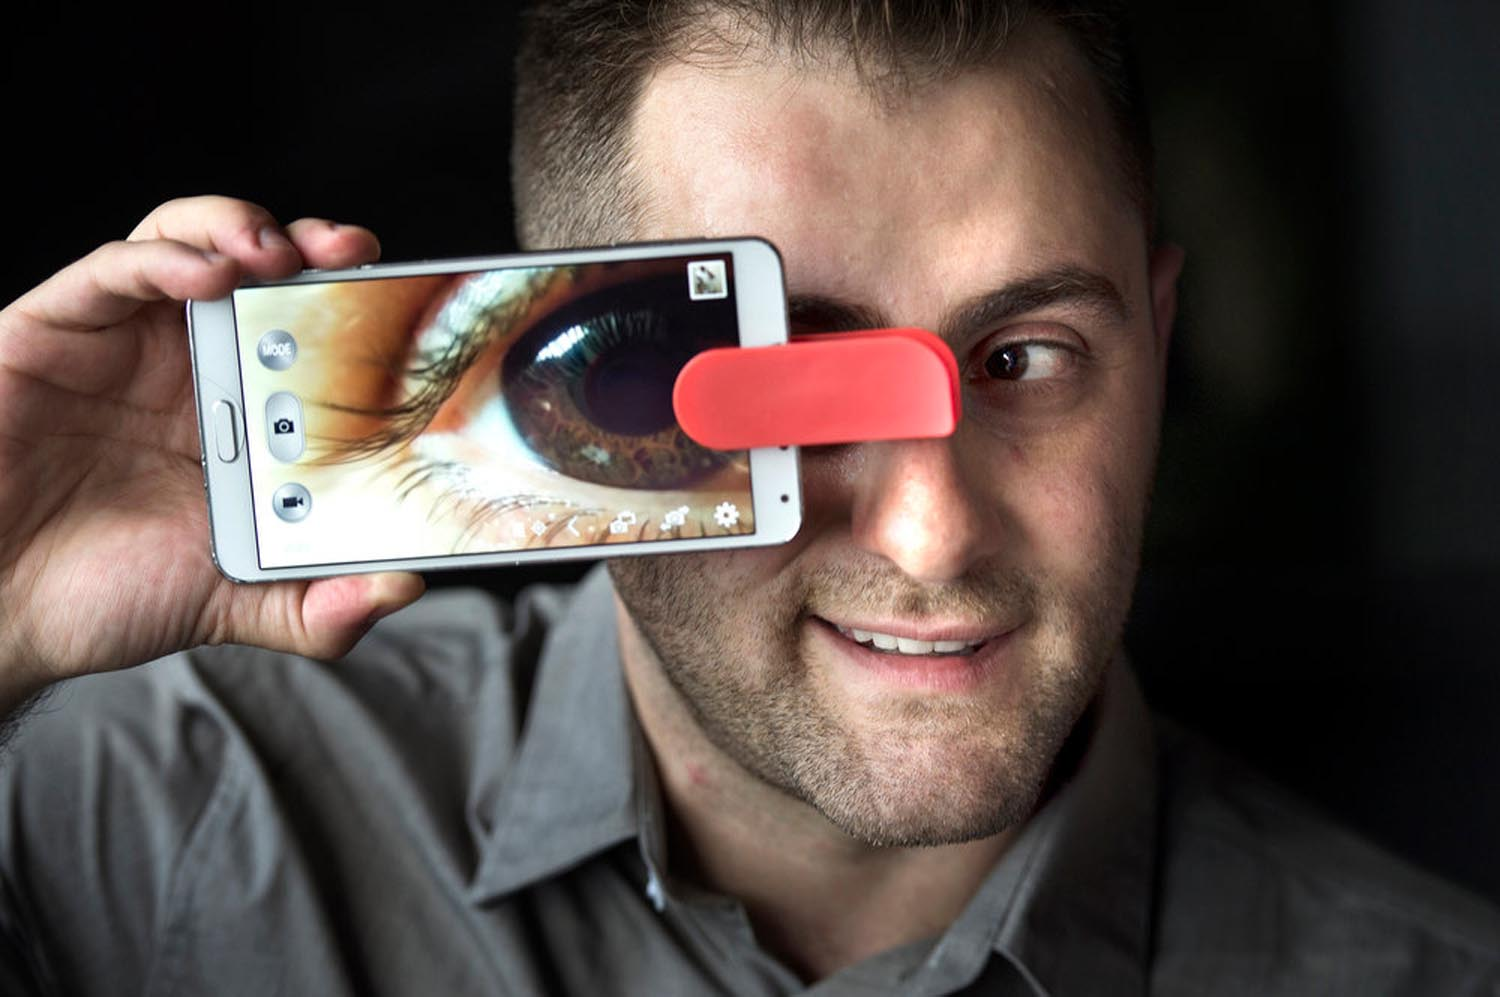 Aris Allahverdian, inventor, CEO of Mobi-Lens, shows his product. The lenses (wide angle, fish eye, macro) clip on to any smart device. The universal design fits over any smart device on front or back camera.